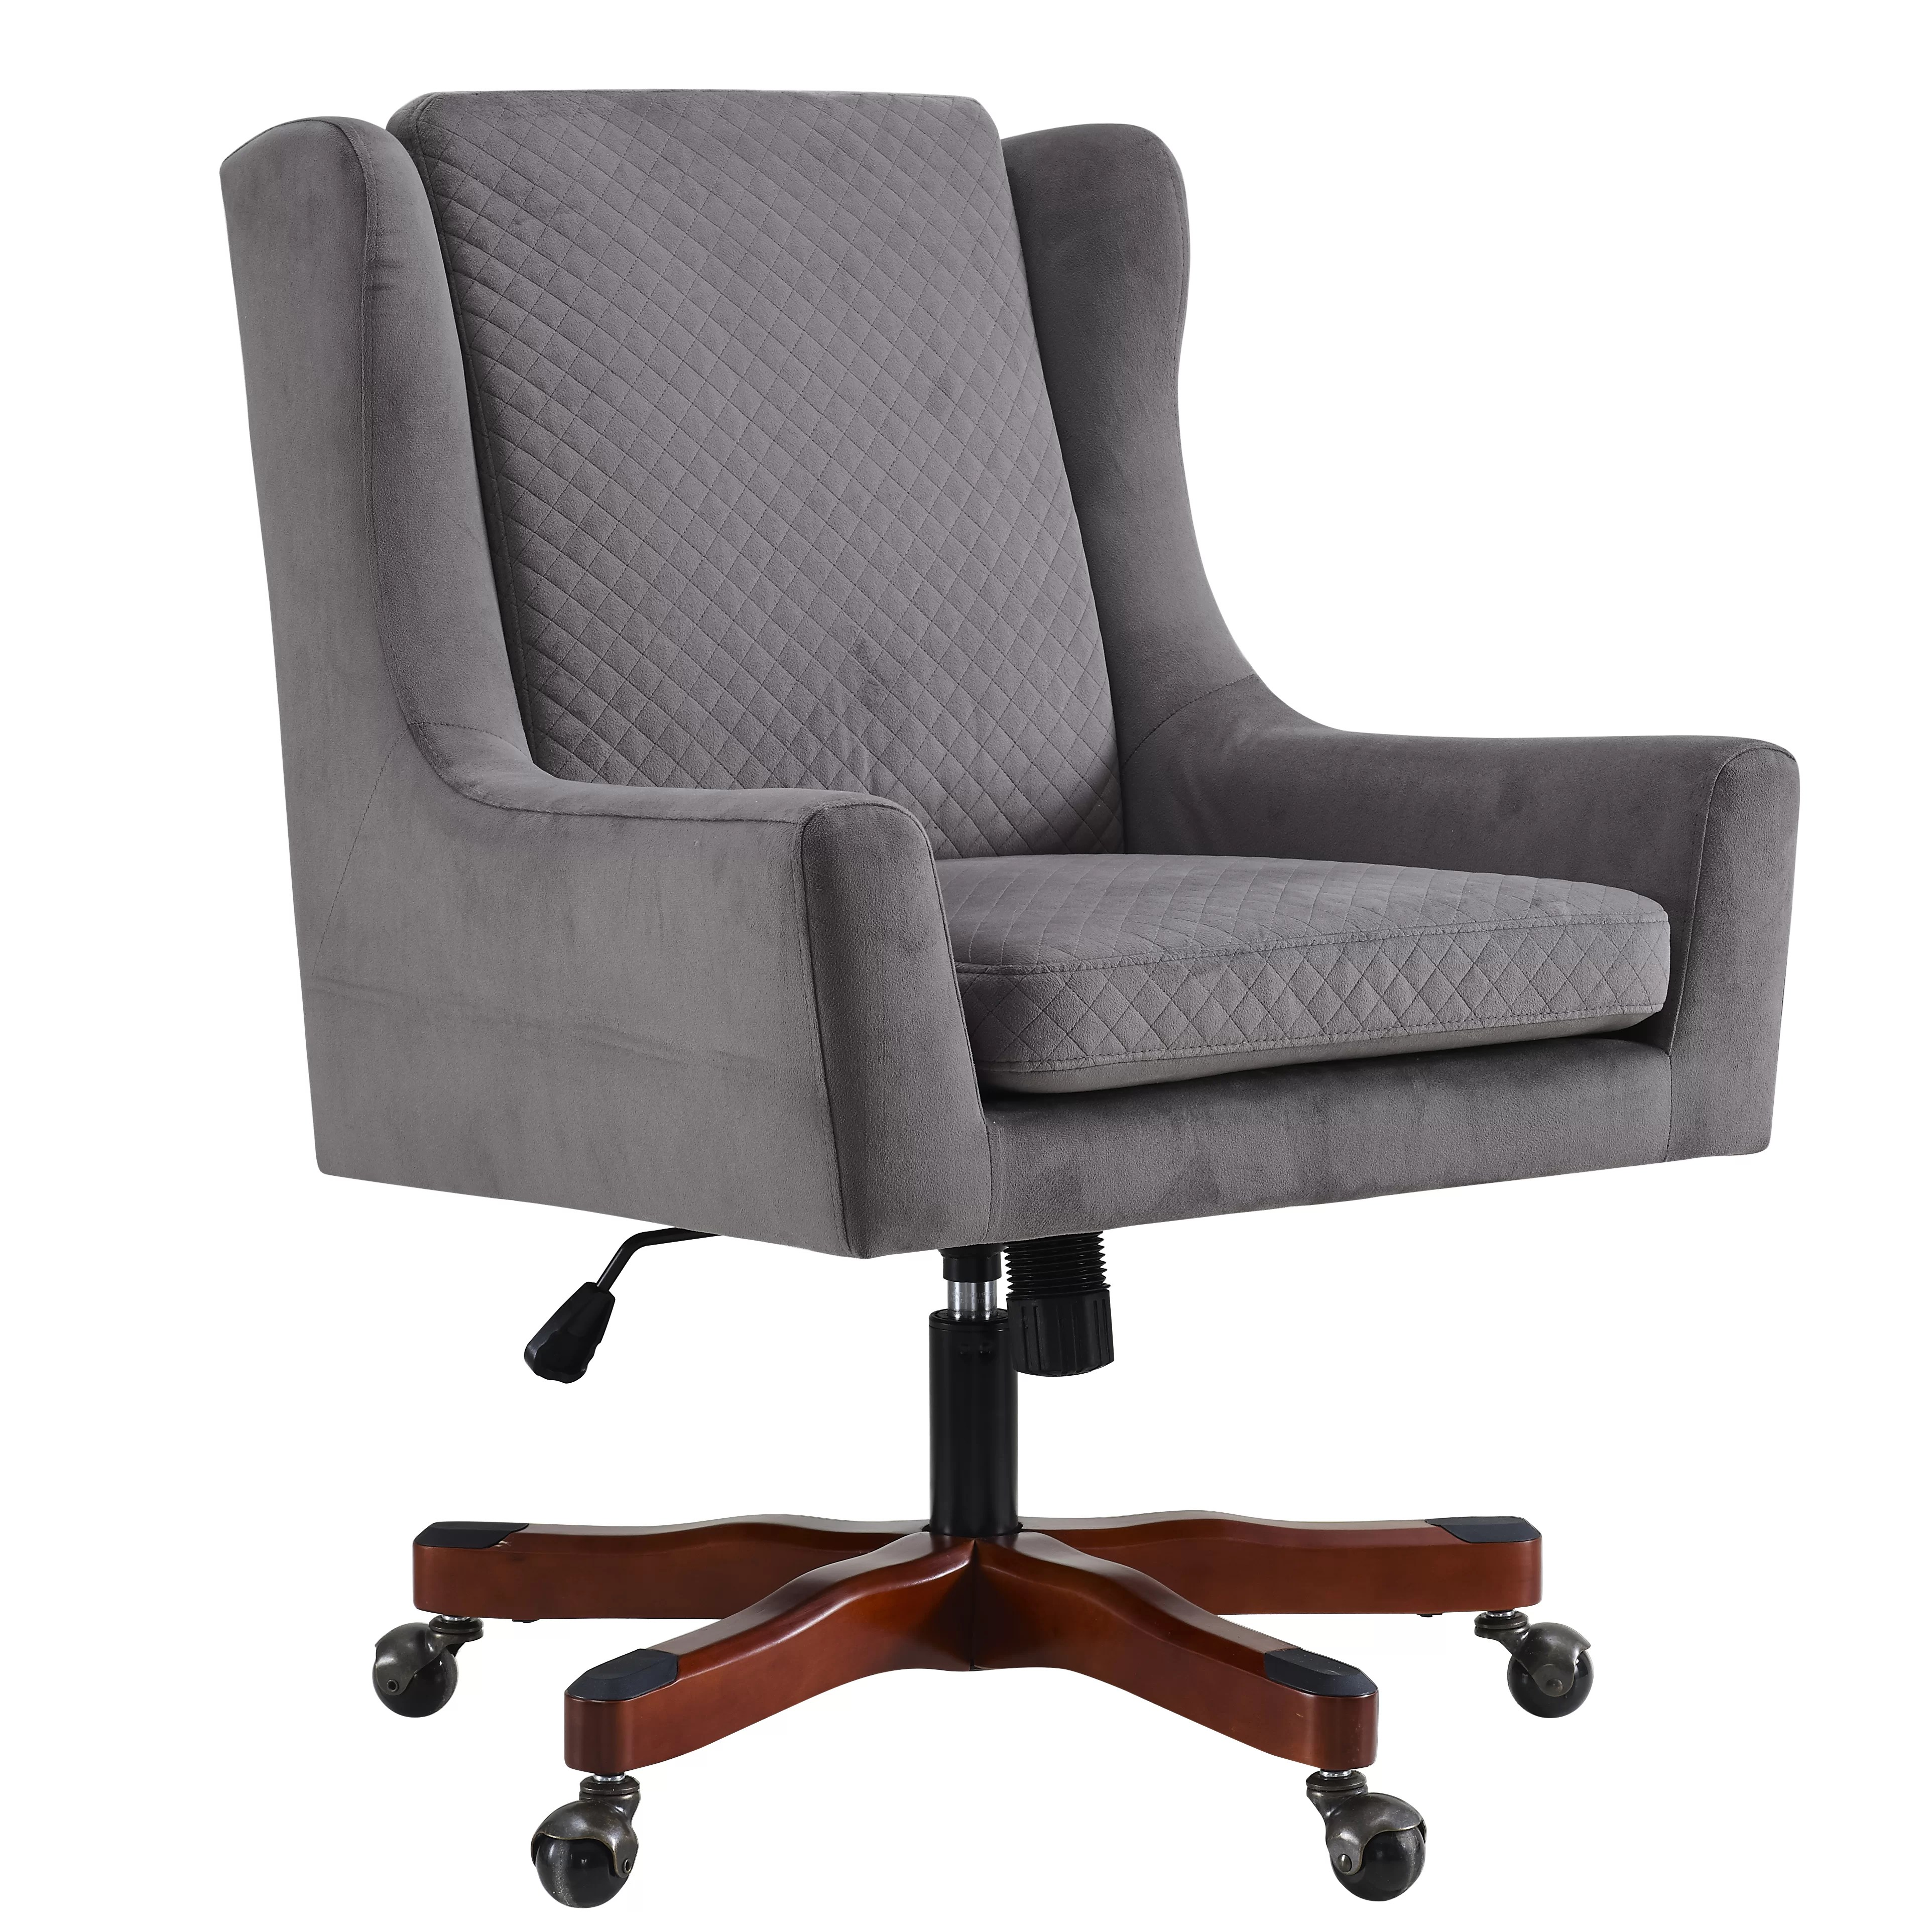 Desk Seat Elwyn Mid Back Desk Chair